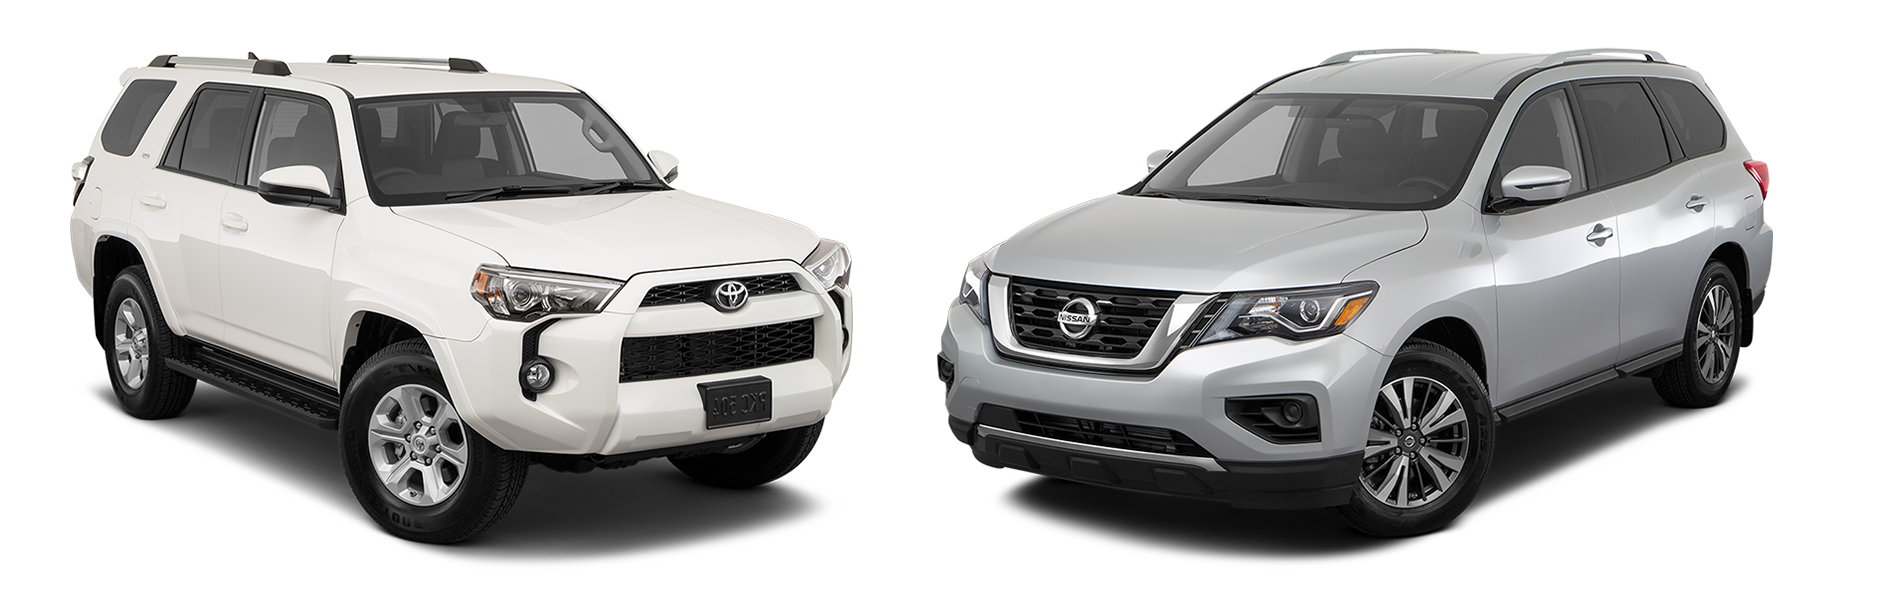 Nissan Pathfinder vs 4Runner